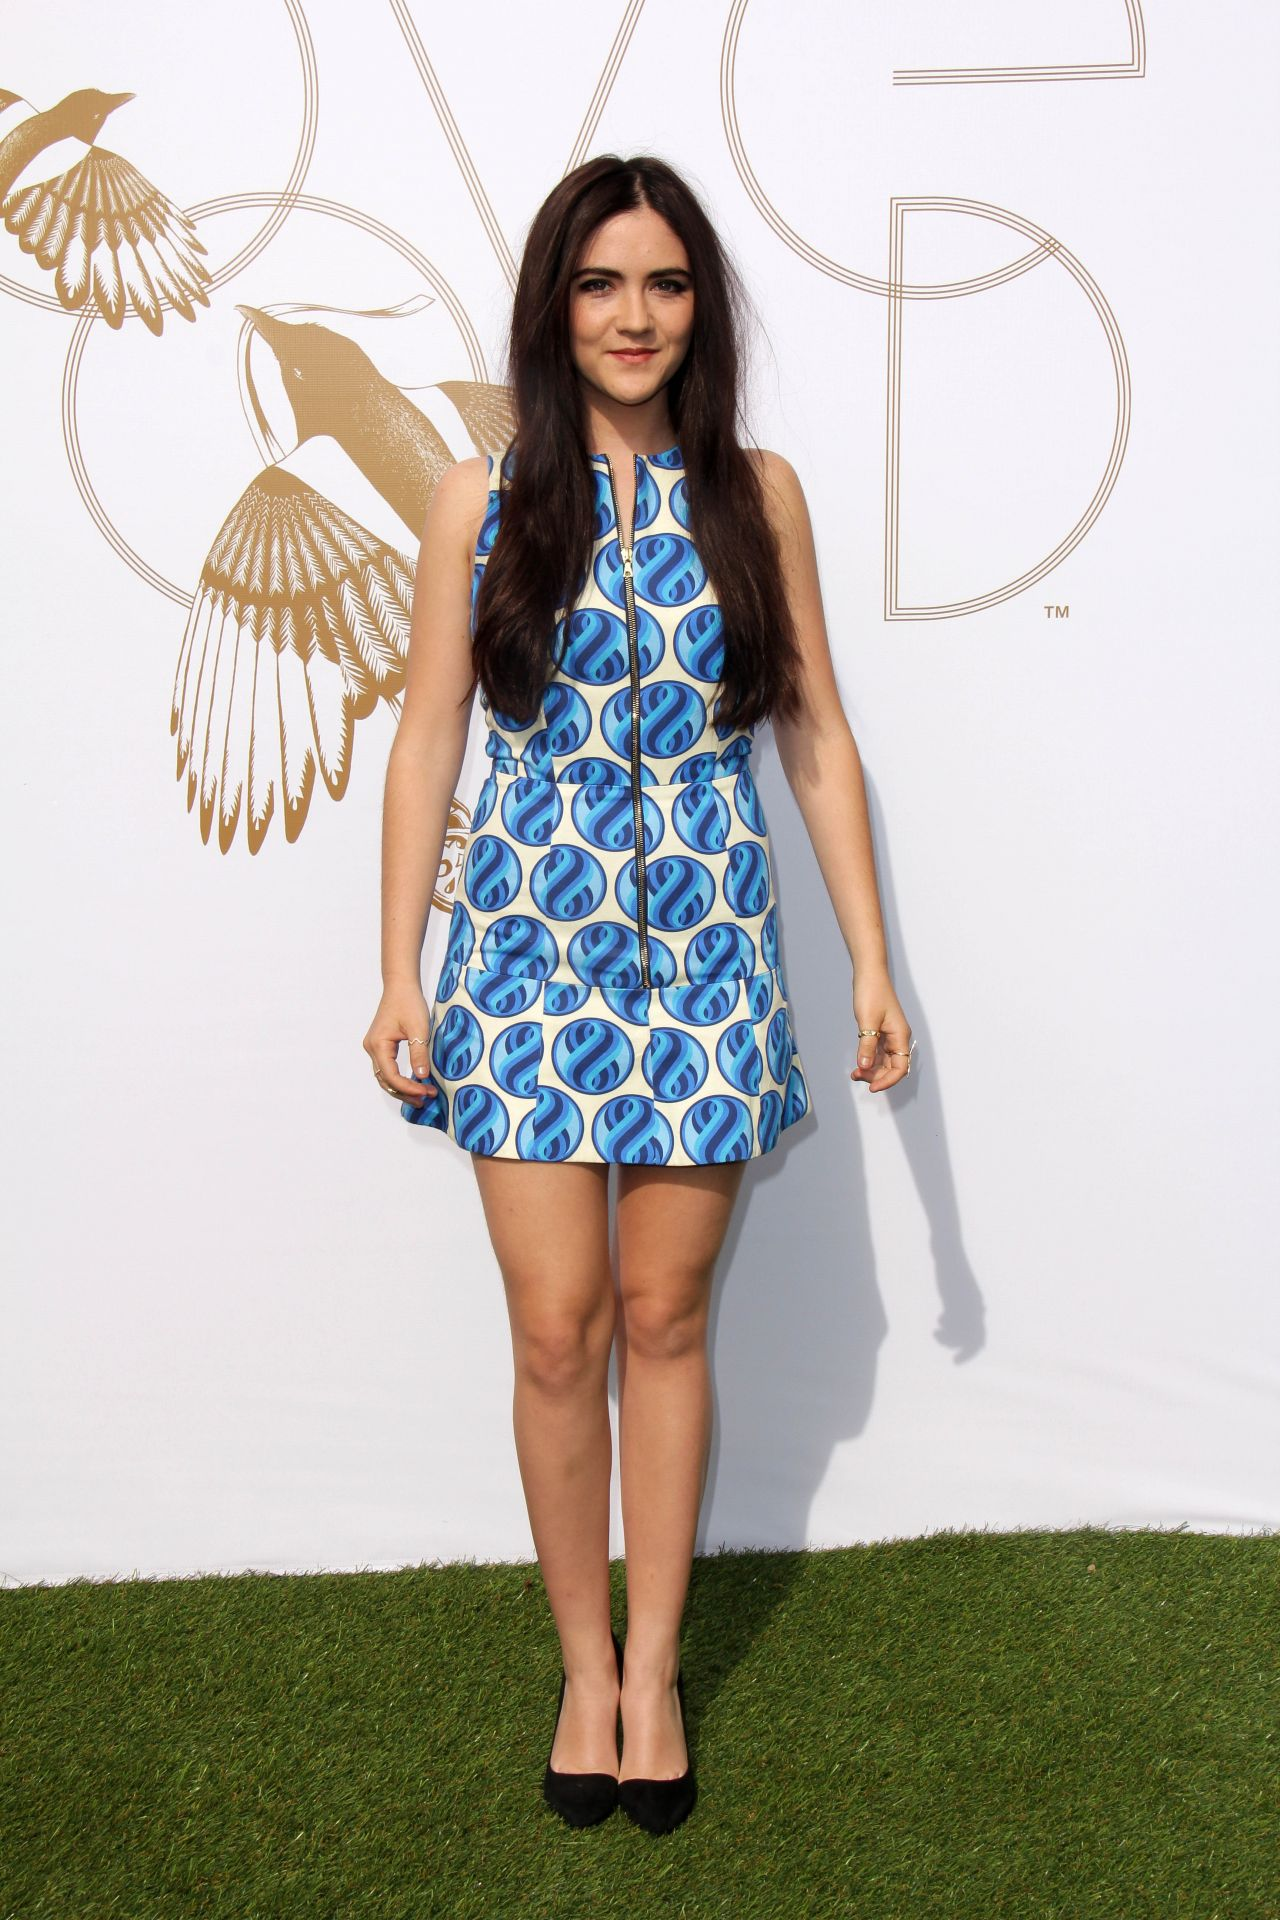 Isabelle Fuhrman - Gold and Glamour Hosted by LoveGold Event in LA - Jan. 2014